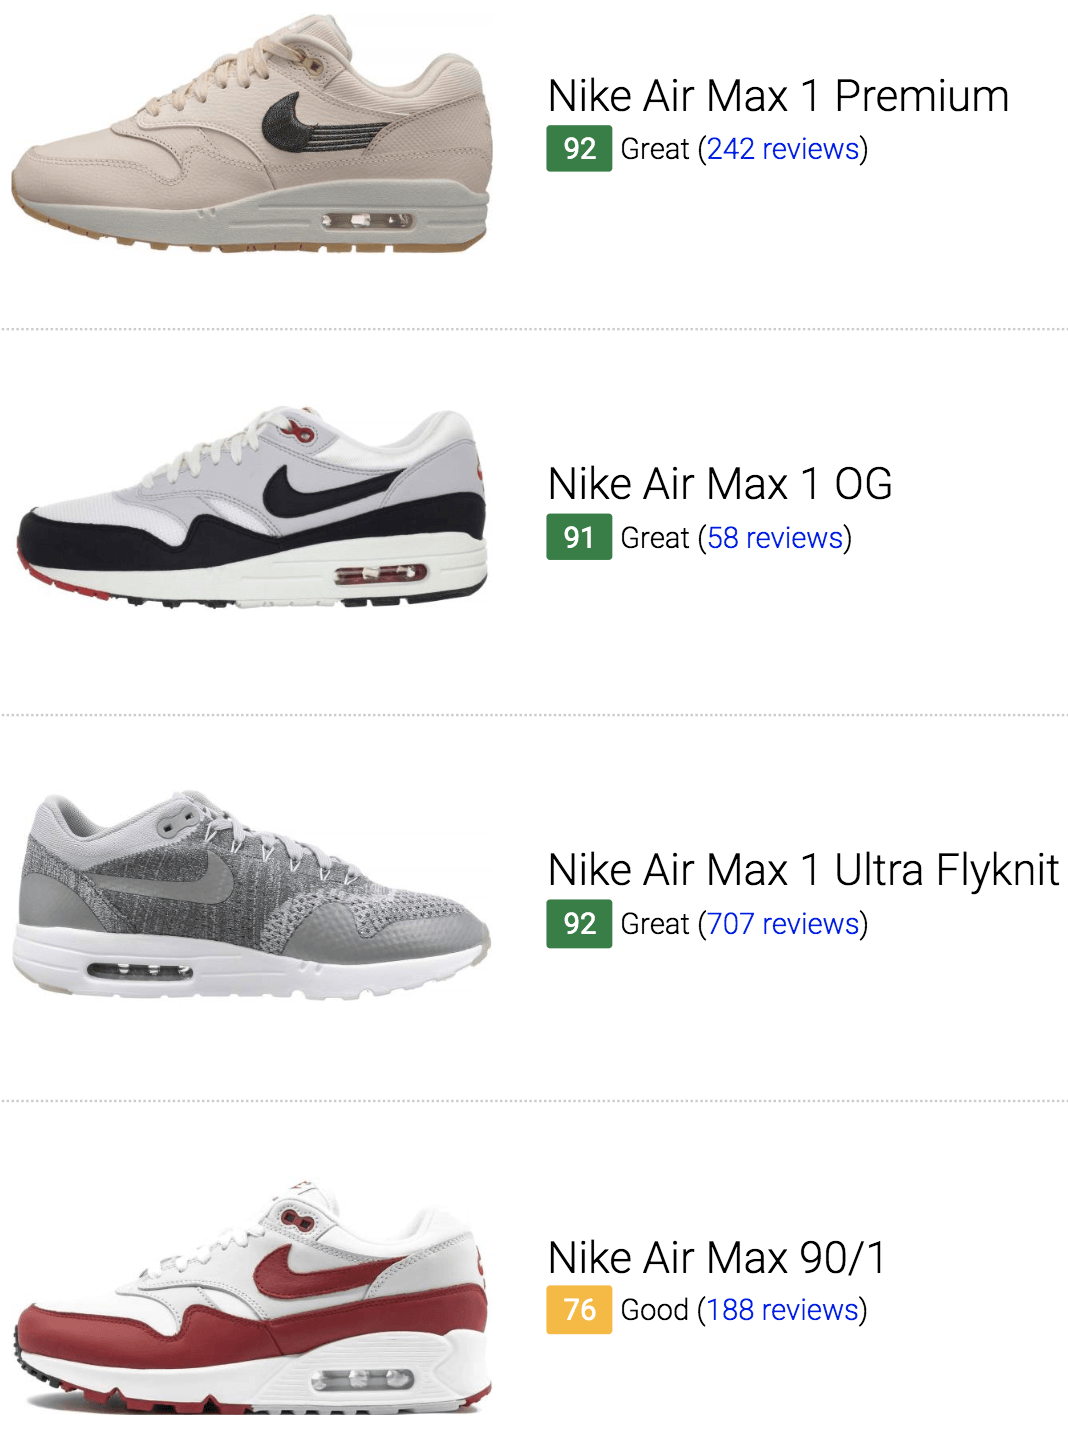 2019 Nike Air Max 1 Premium Sneakers Leather Polyester